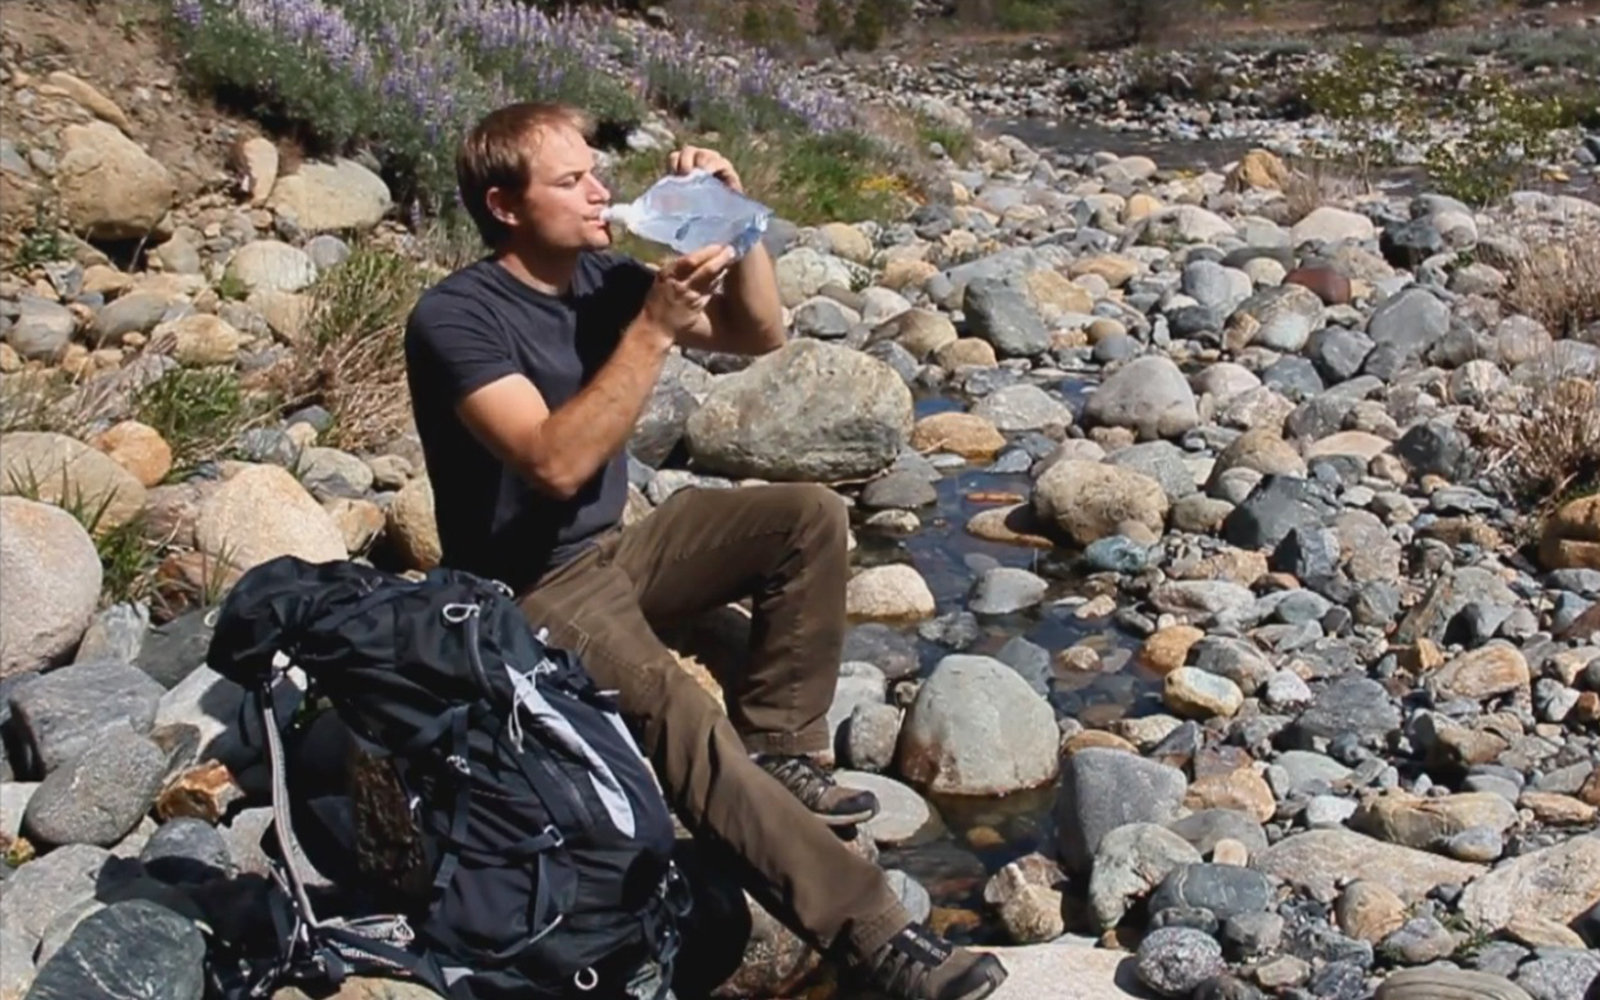 Hikers, Take Note: This Bag Creates Clean Drinking Water with the Power of the Sun